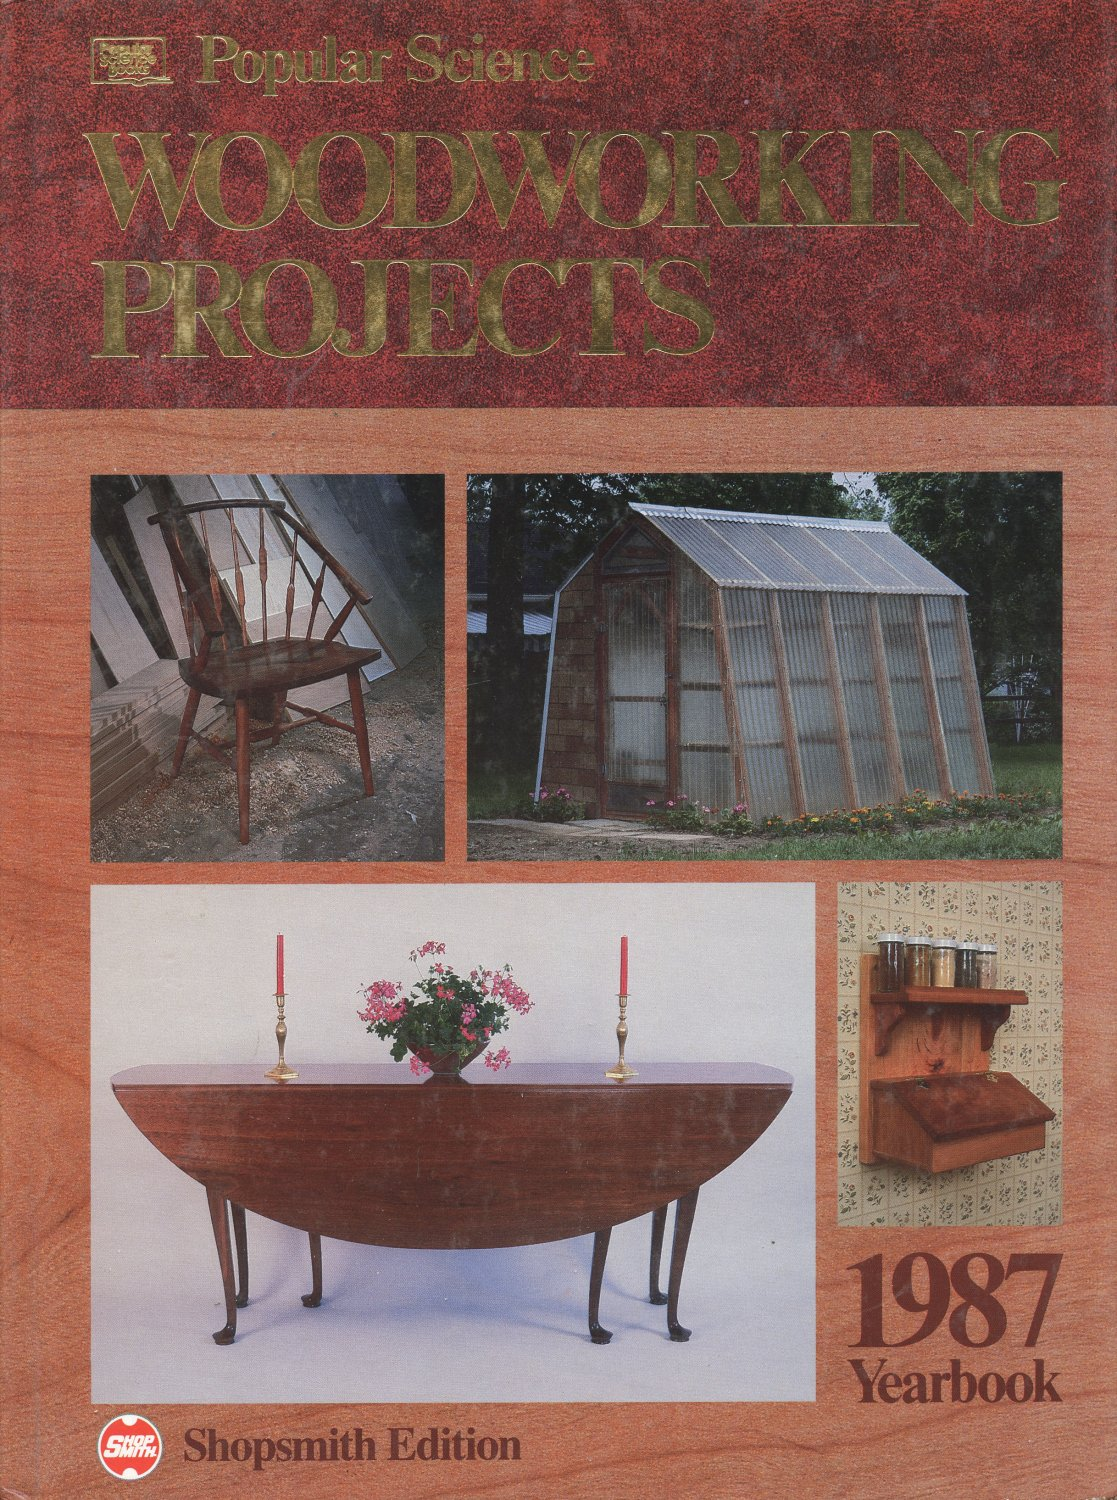 Popular Science : Woodworking Projects Yearbook, 1987 Hardcover